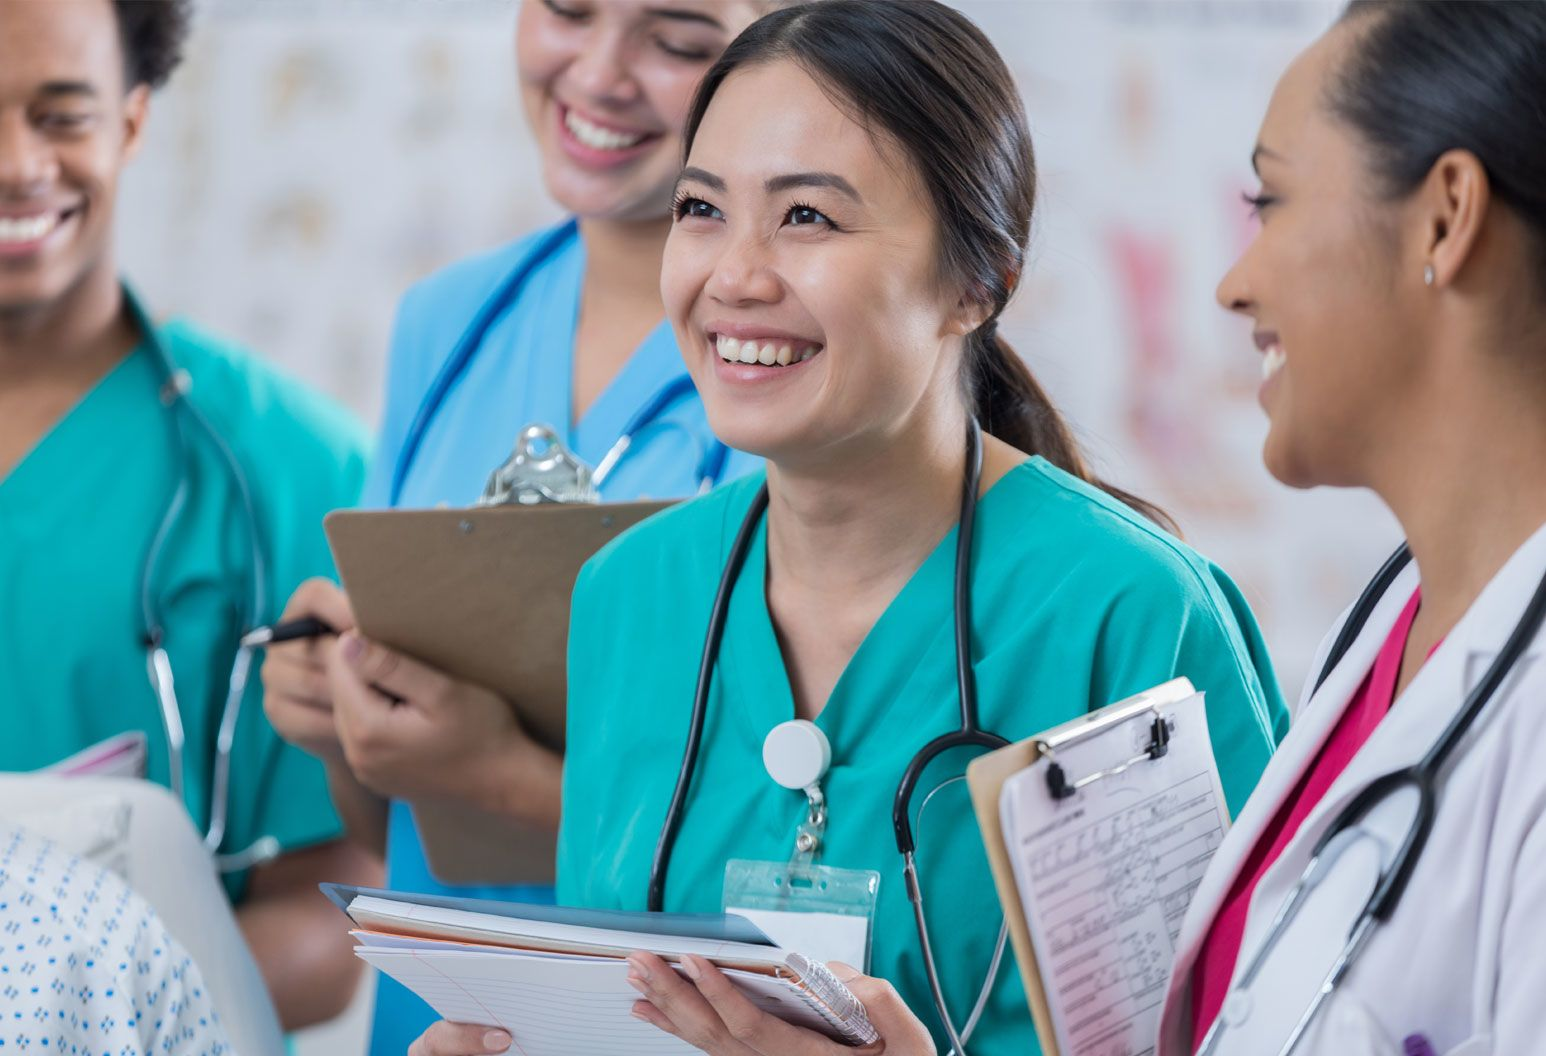 A group of people in scrubs hold clipboards. The focus is on a young asian woman who is smiling and looking up.